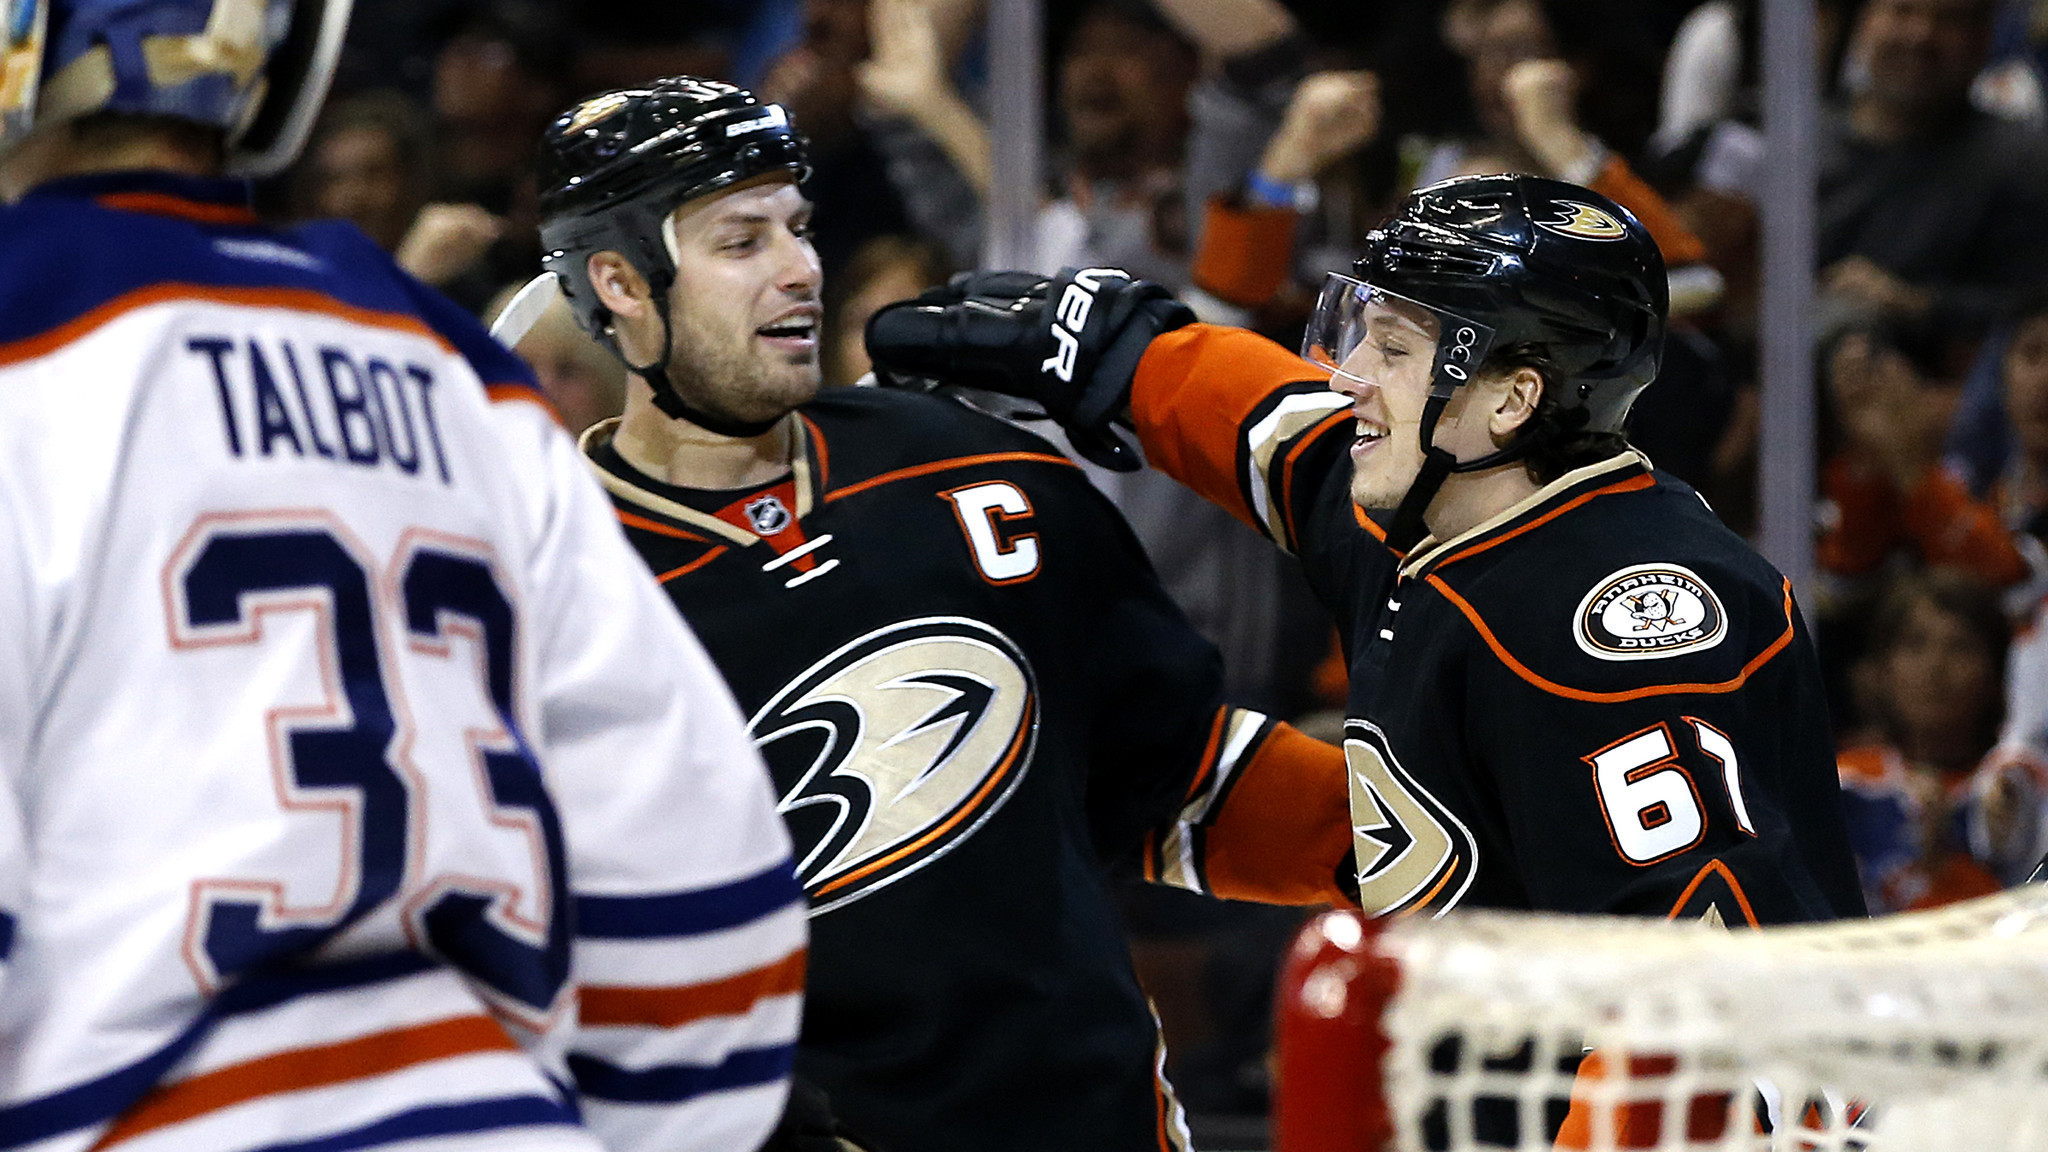 Created At 2017 03 23 1229 20042010 Toyota Sienna Reese Tconnector Wiring Harness 78004 Ducks Twice Erase One Goal Deficits In 4 3 Victory Over The Oilers 1599 24